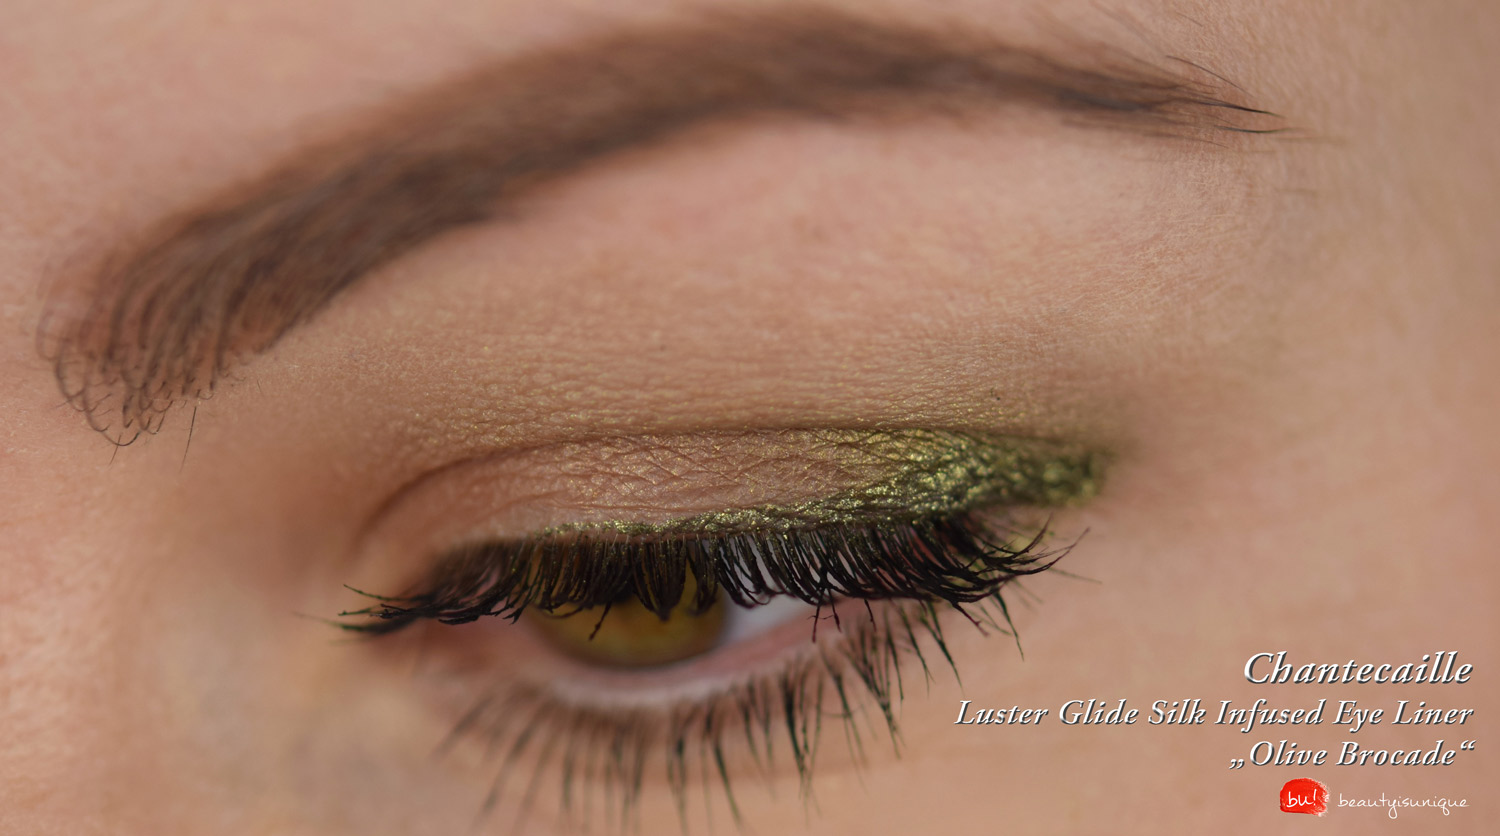 chantecaille-olive-brocade-luster-glide-silk-infused-liner-swatches